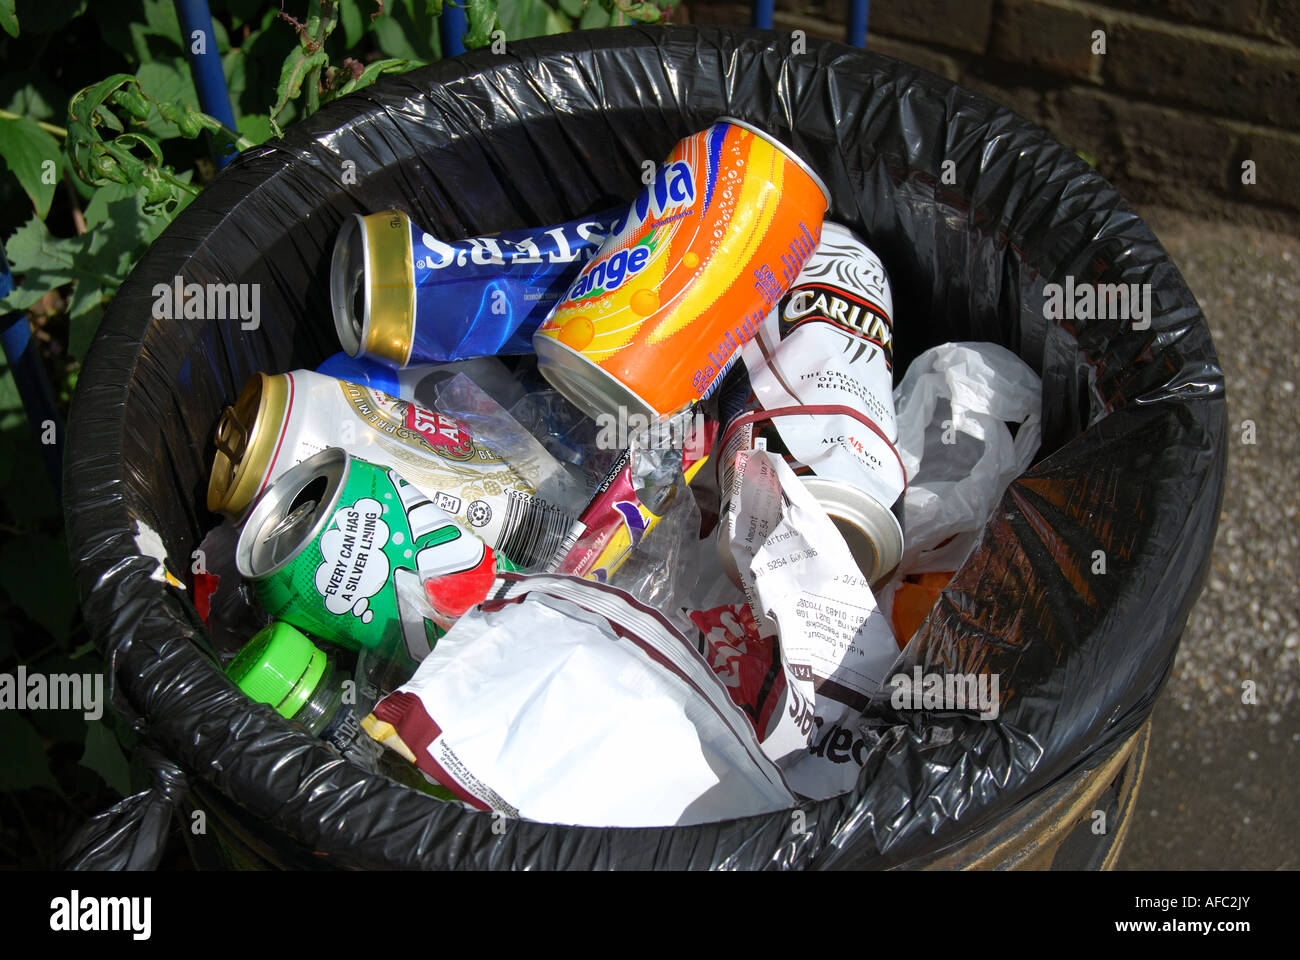 Rubbish bin, empty cans Woking, Surrey, England, United Kingdom - Stock Image